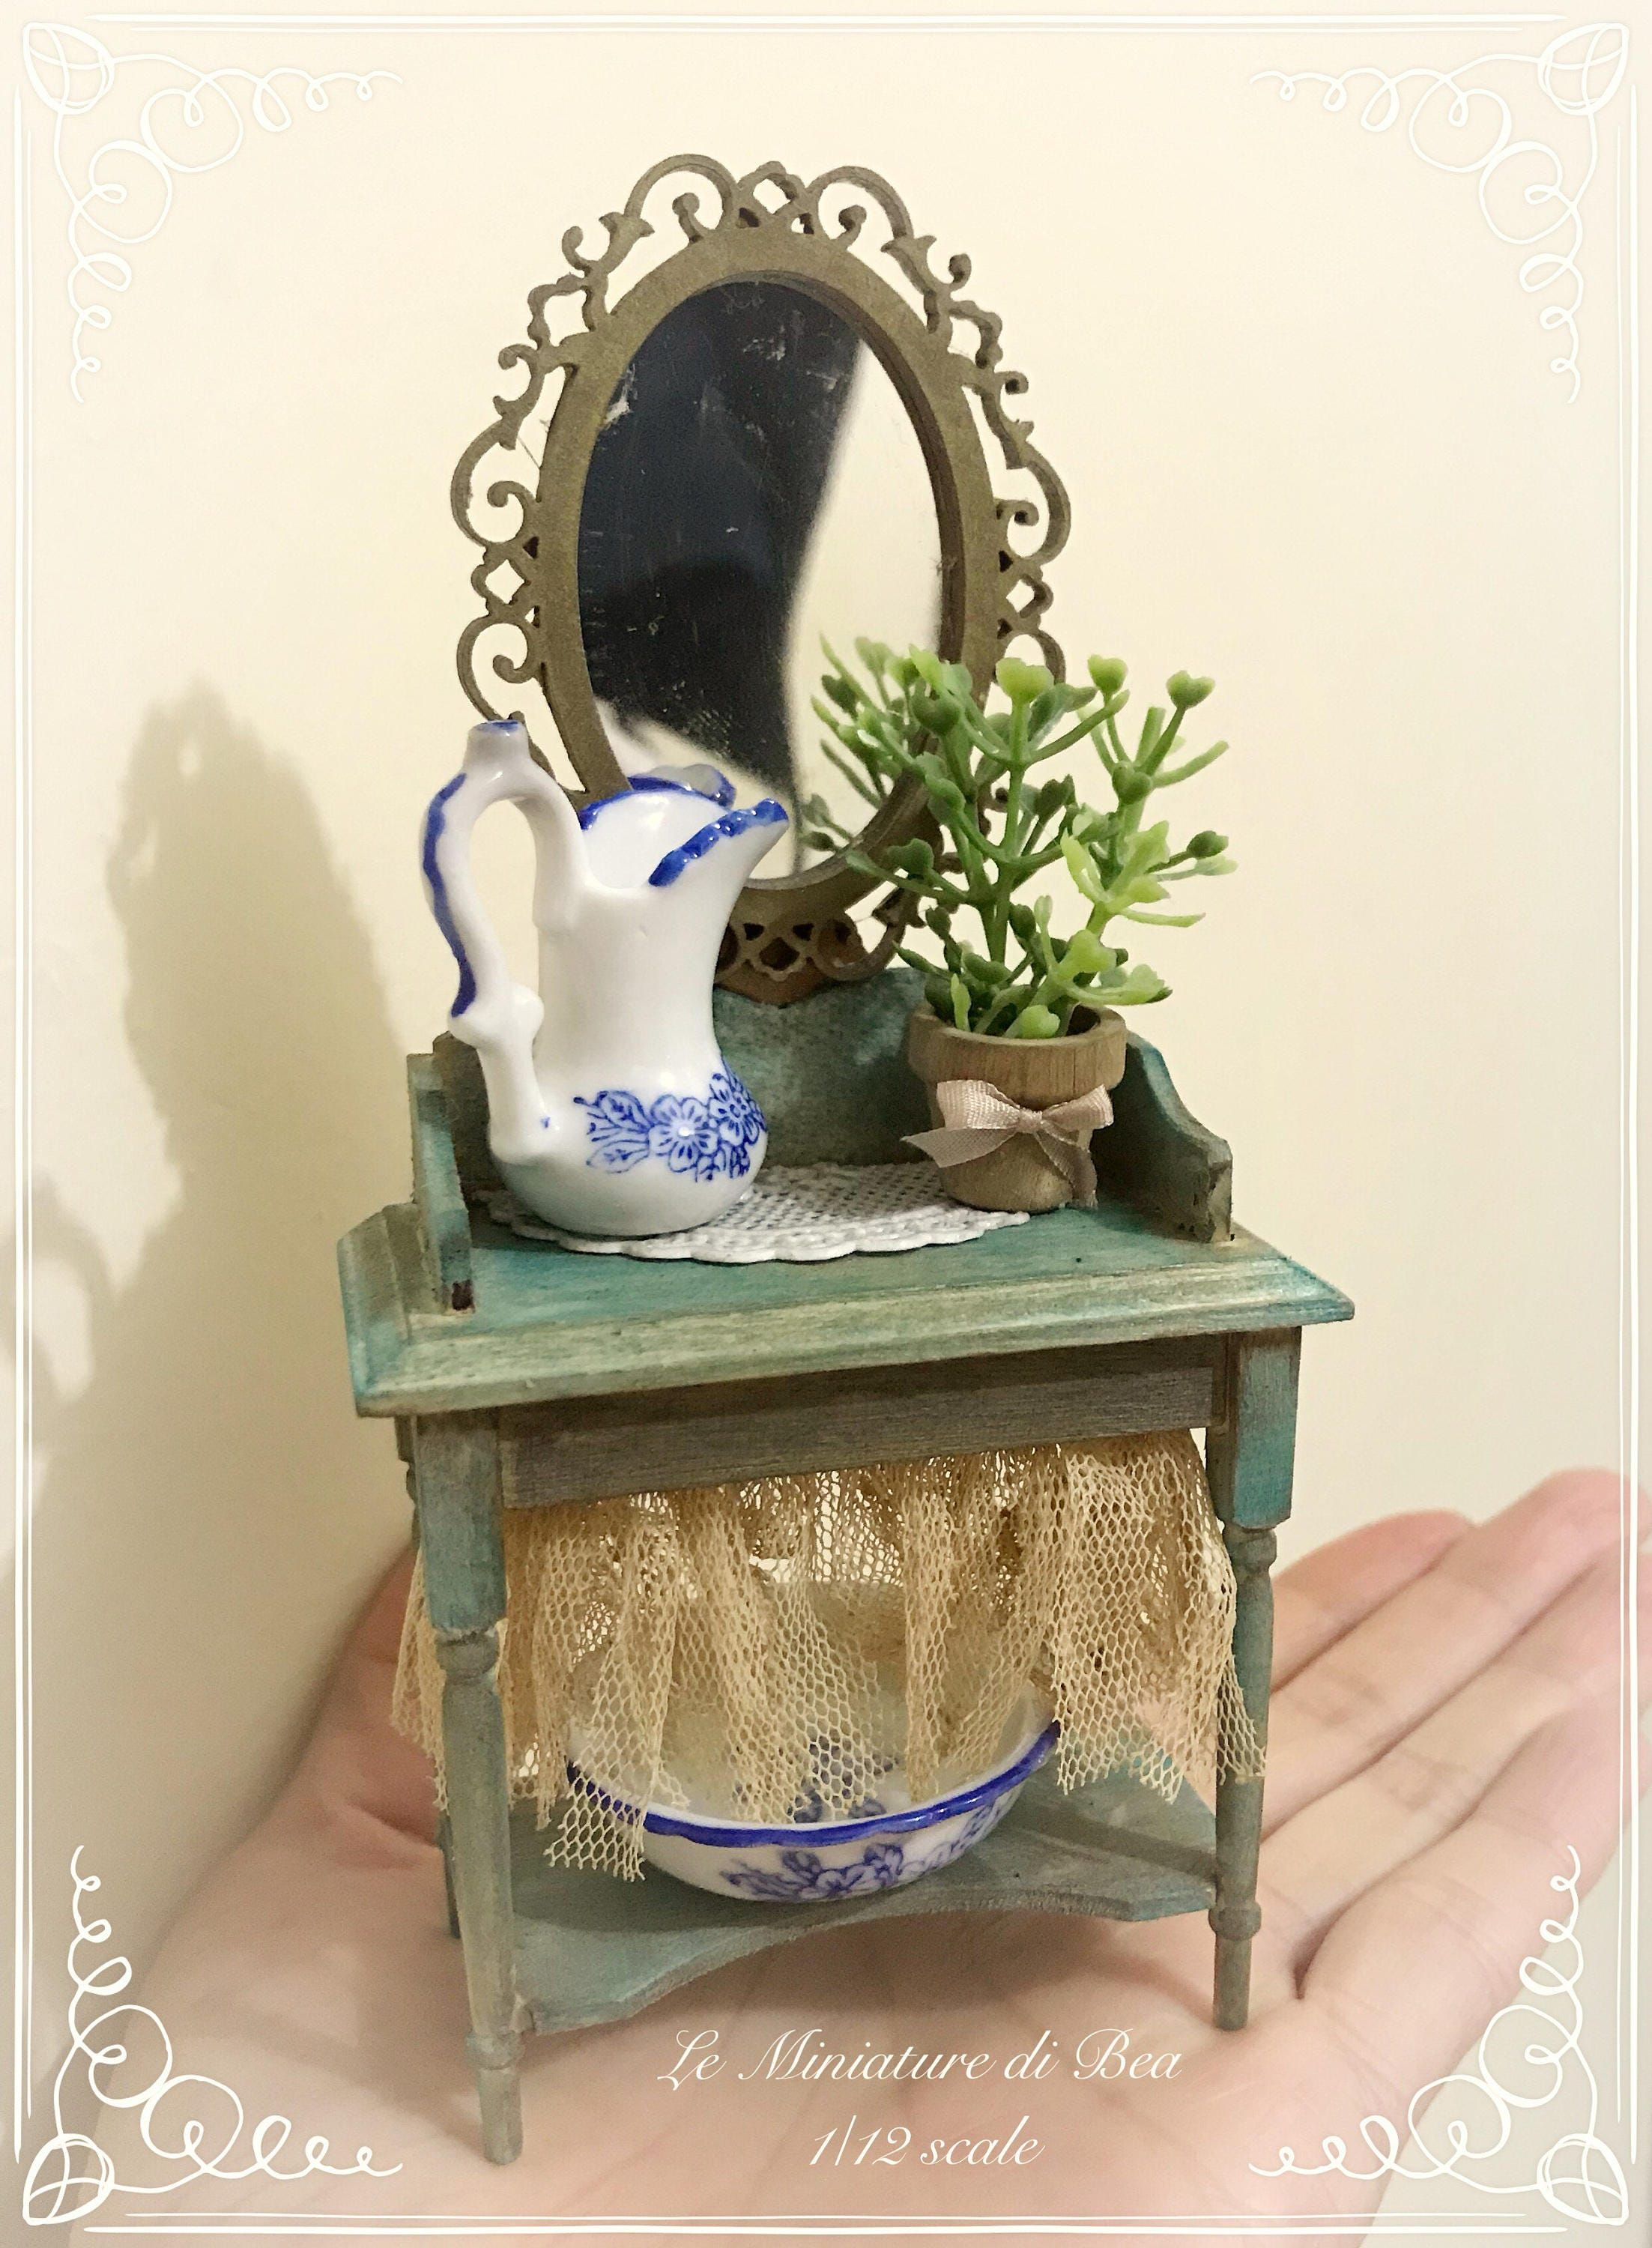 1:12 set furniture vanity and accessories dollshouse miniature hand made by Bea.